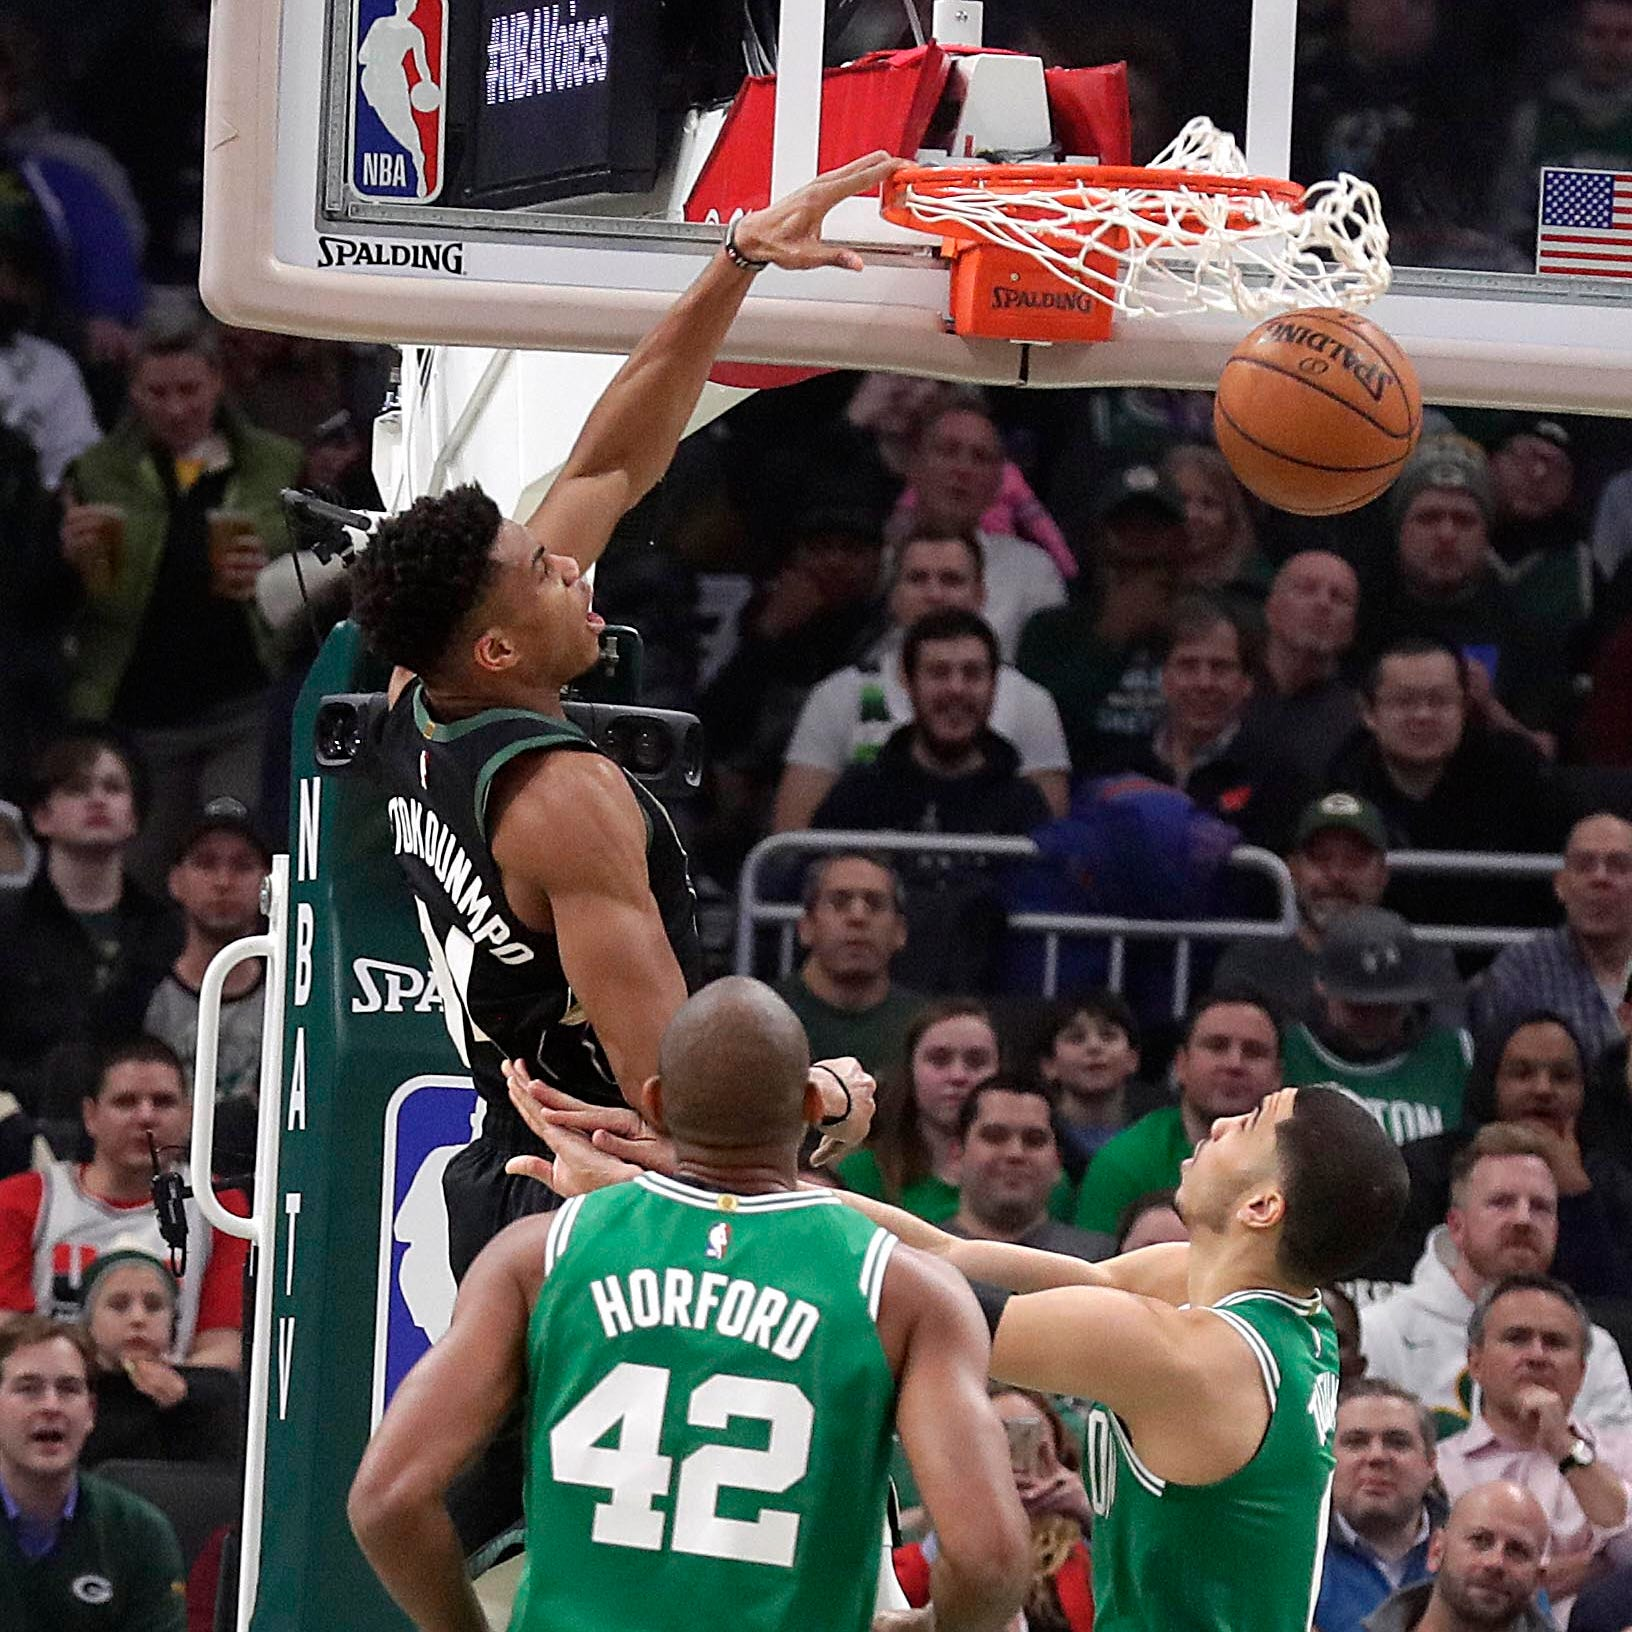 Bucks 98, Celtics 97: Having just enough of the right stuff